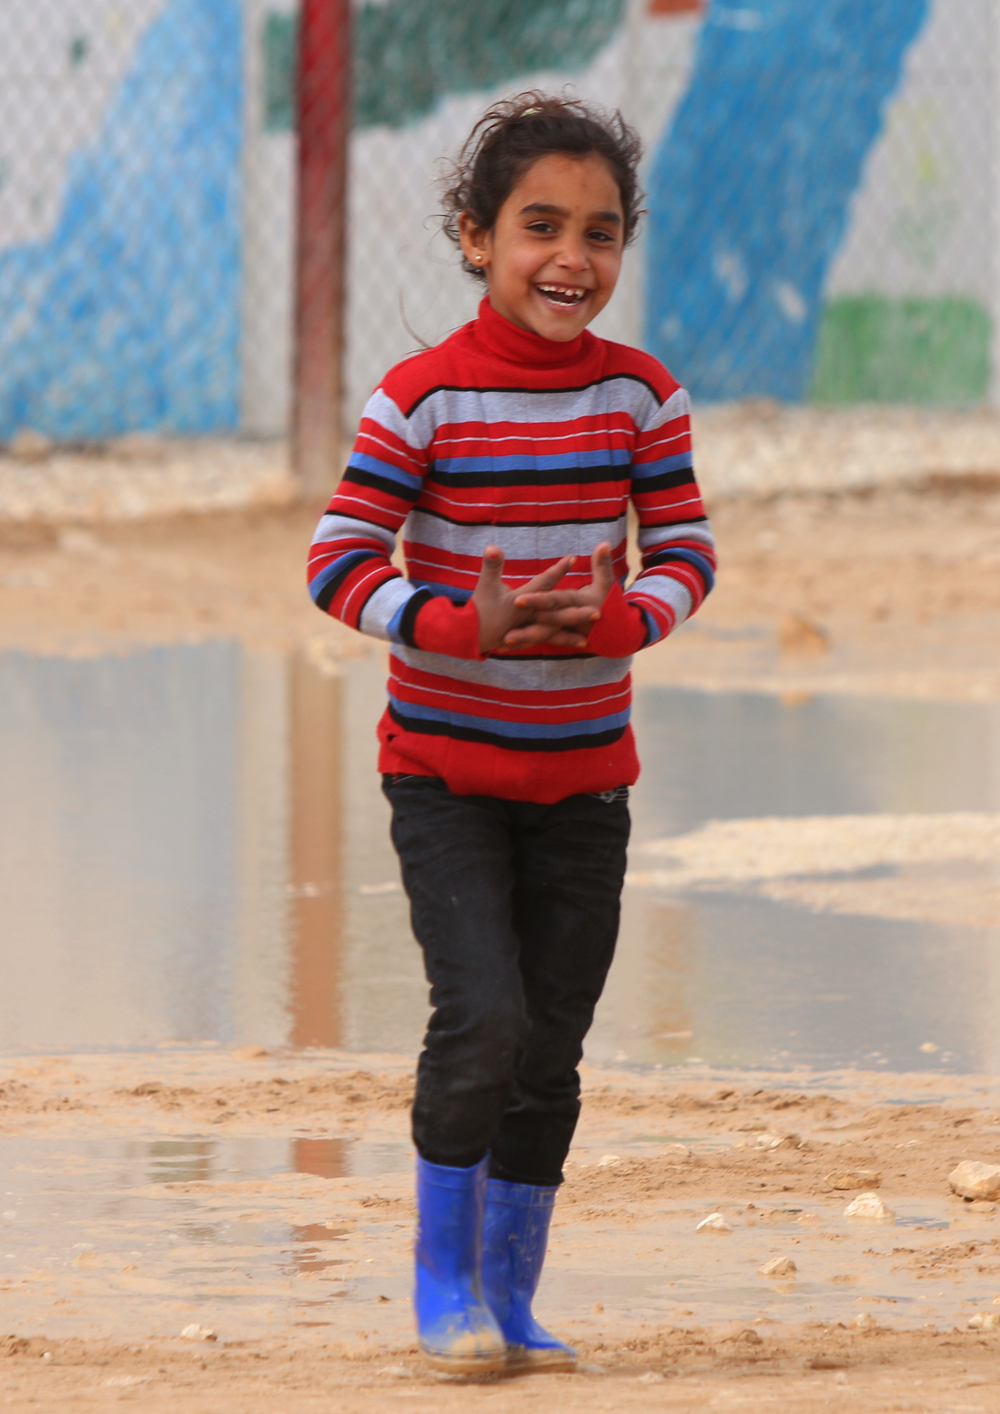 Syrian refugee smiling girl walking